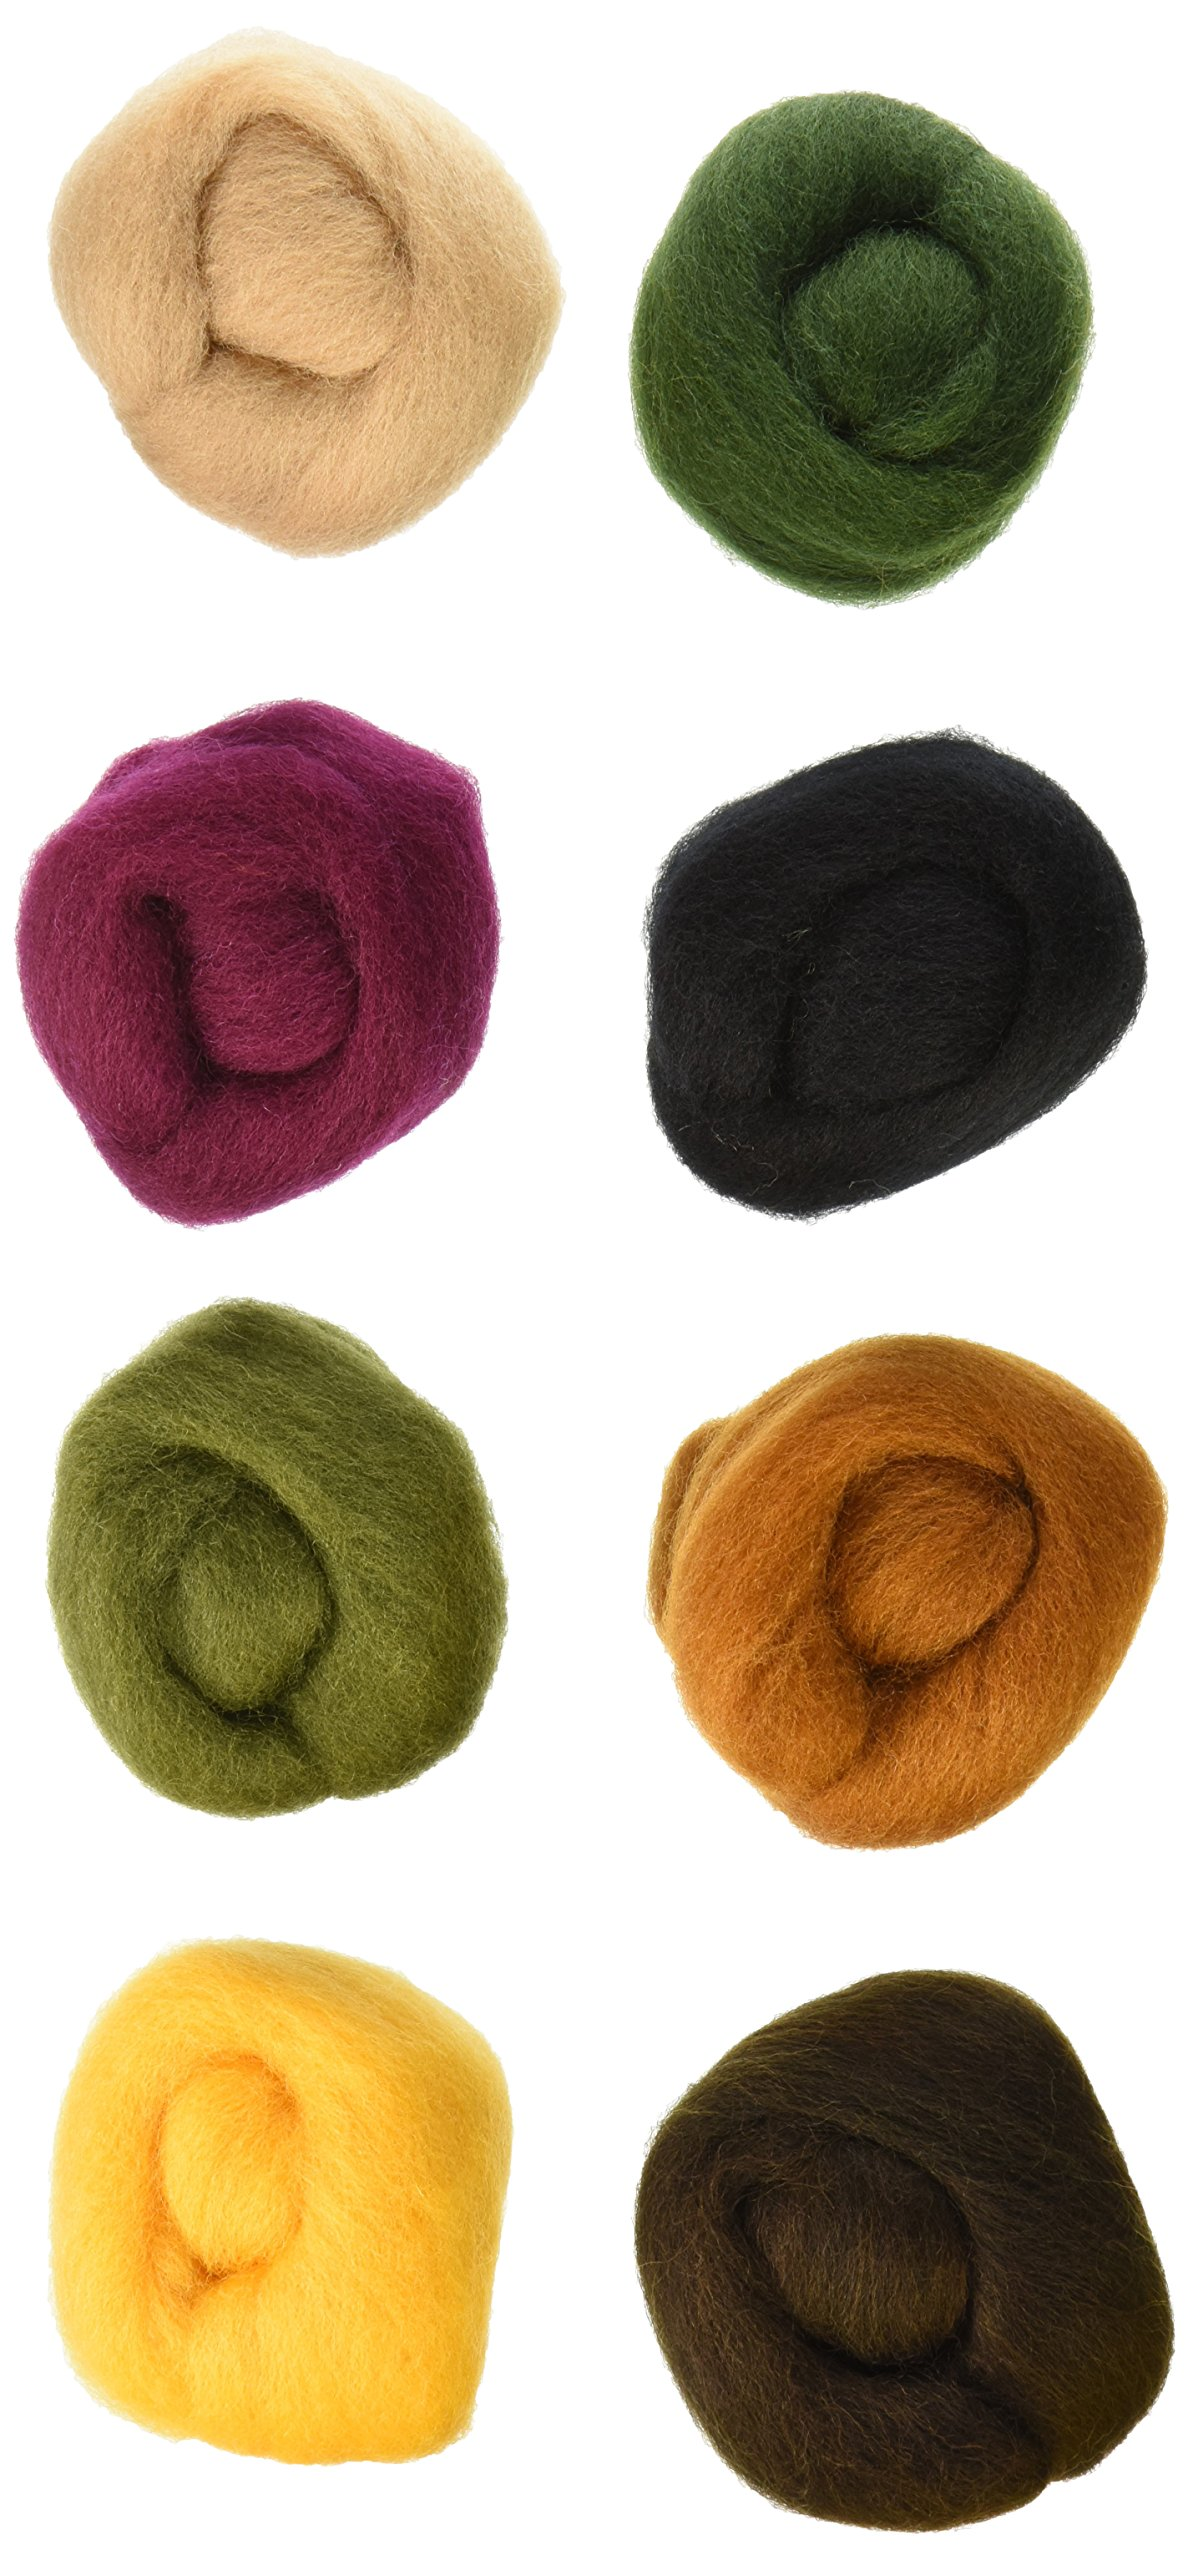 Wistyria Editions WR-907R Wool Roving, Falling Leaves, 8-Pack by Wistyria Editions